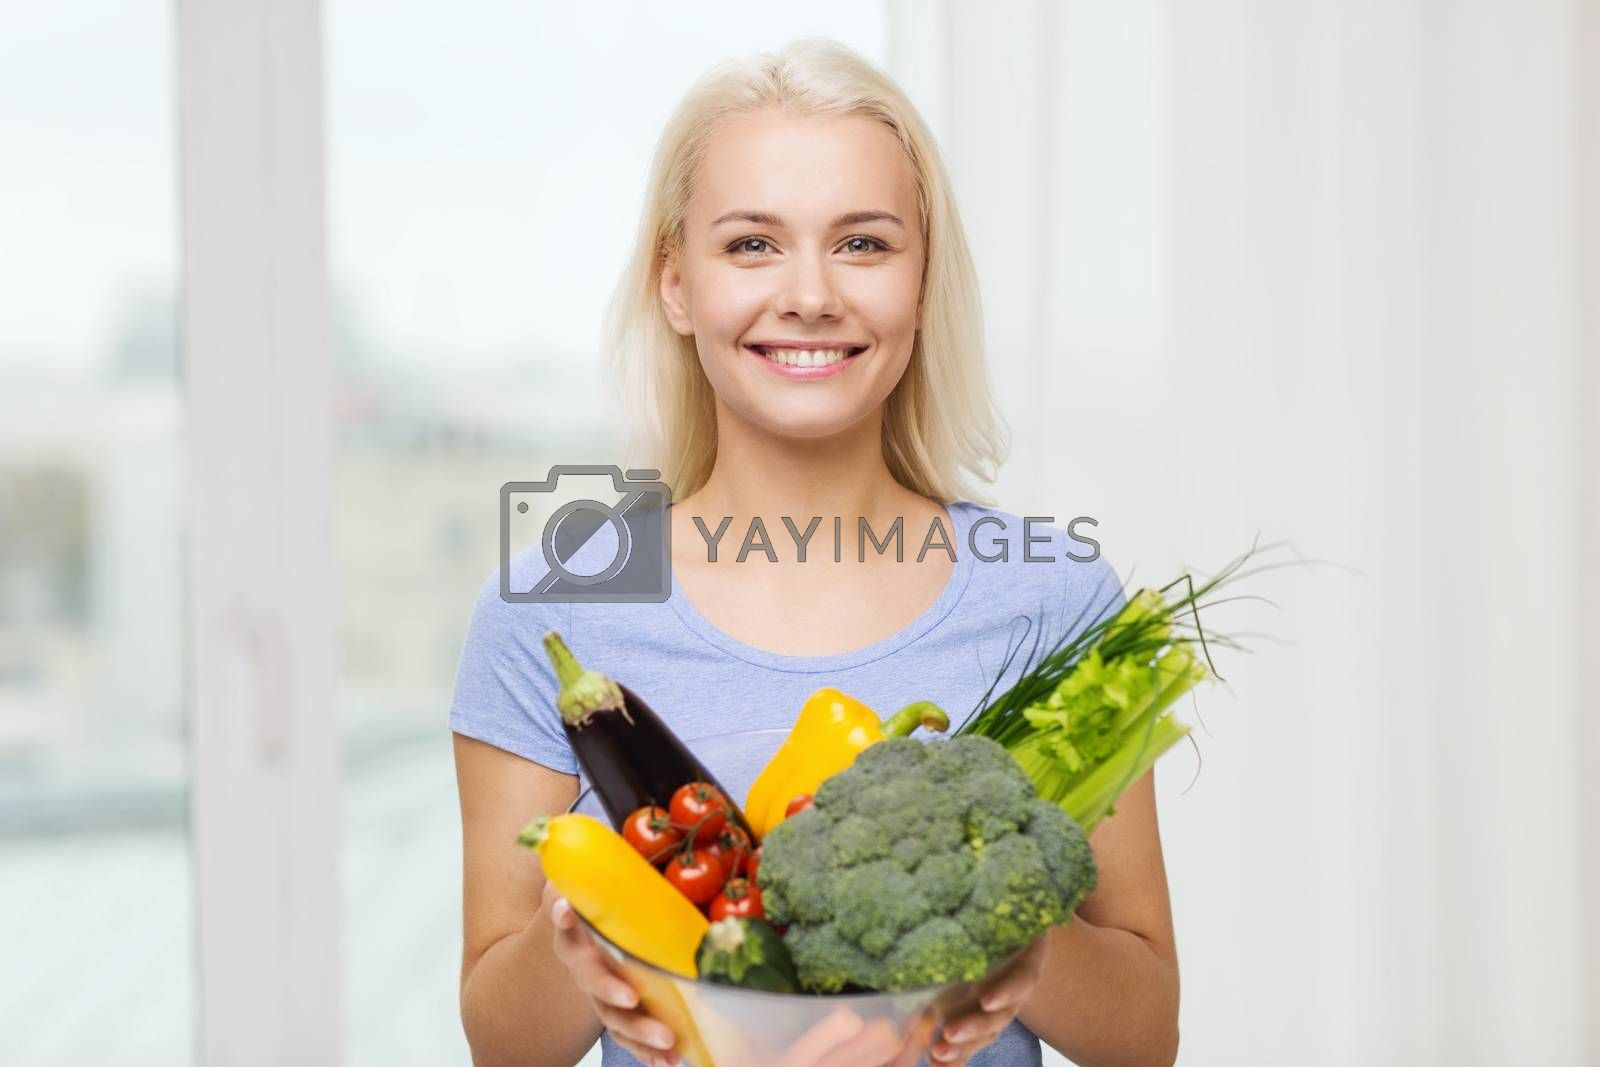 Royalty free image of smiling young woman with vegetables at home by dolgachov